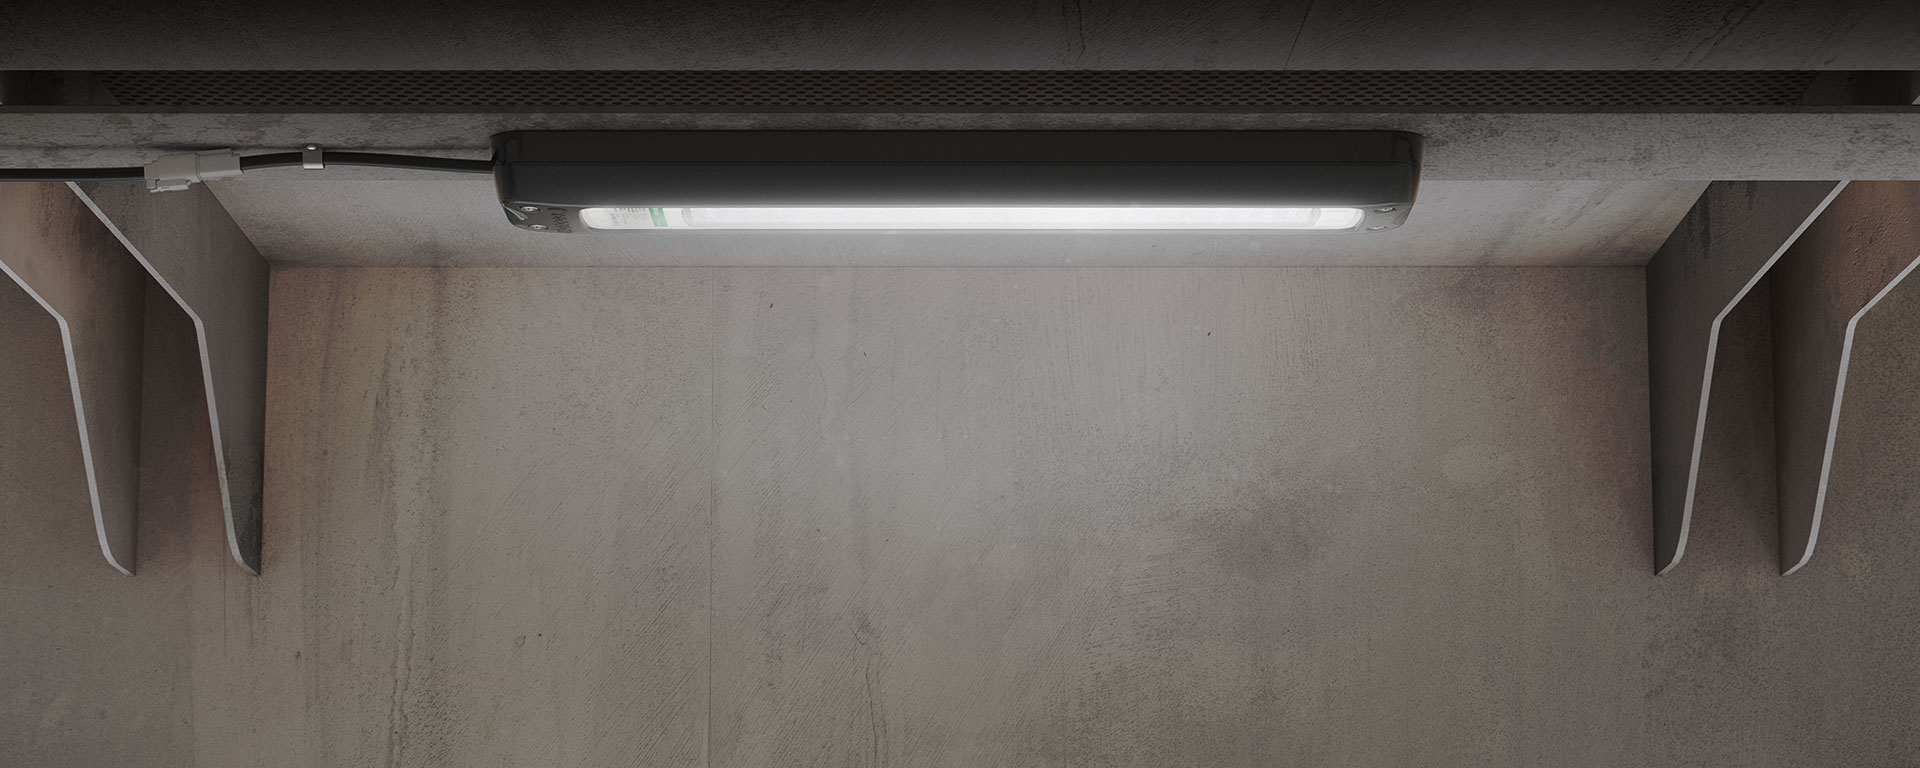 Measuring at only 86mm wide, 481mm long and 38mm deep, the Machine Light is perhaps the most compact and versatile luminaire for many challenging industrial lighting applications.